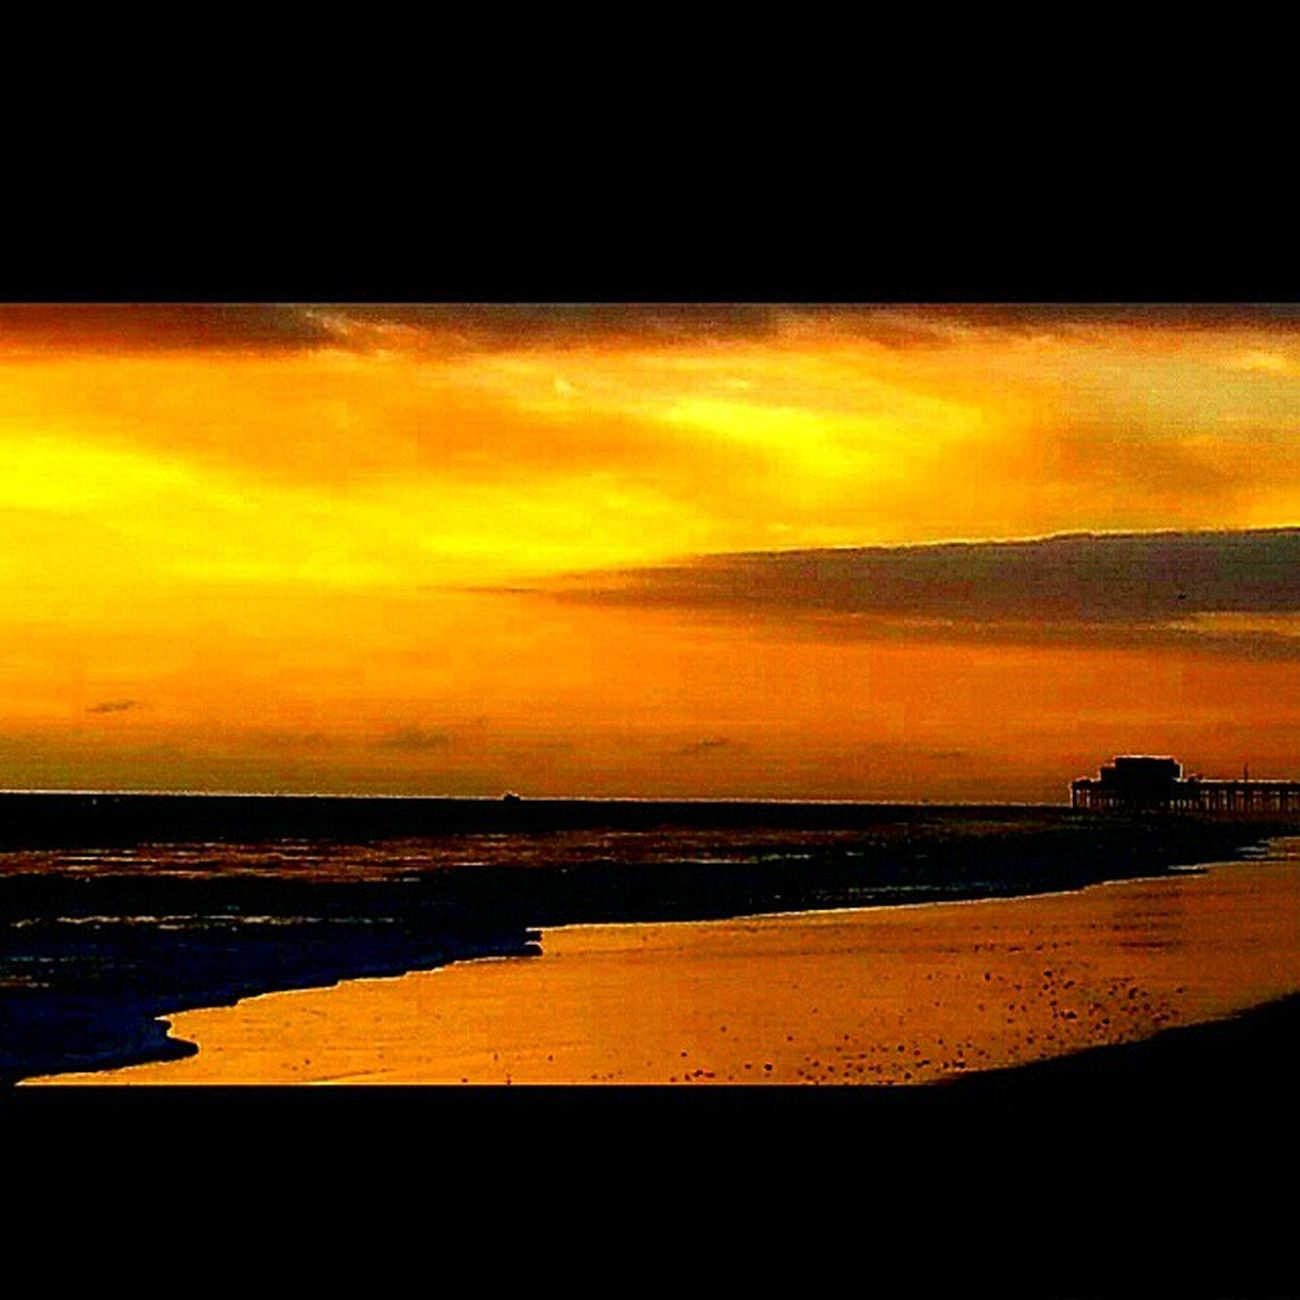 12thstreetbeach Balboablvd Balboapier Newportbeach california sunset serenity bliss meandmythoughts calming livinthedream heavenonearth itexists